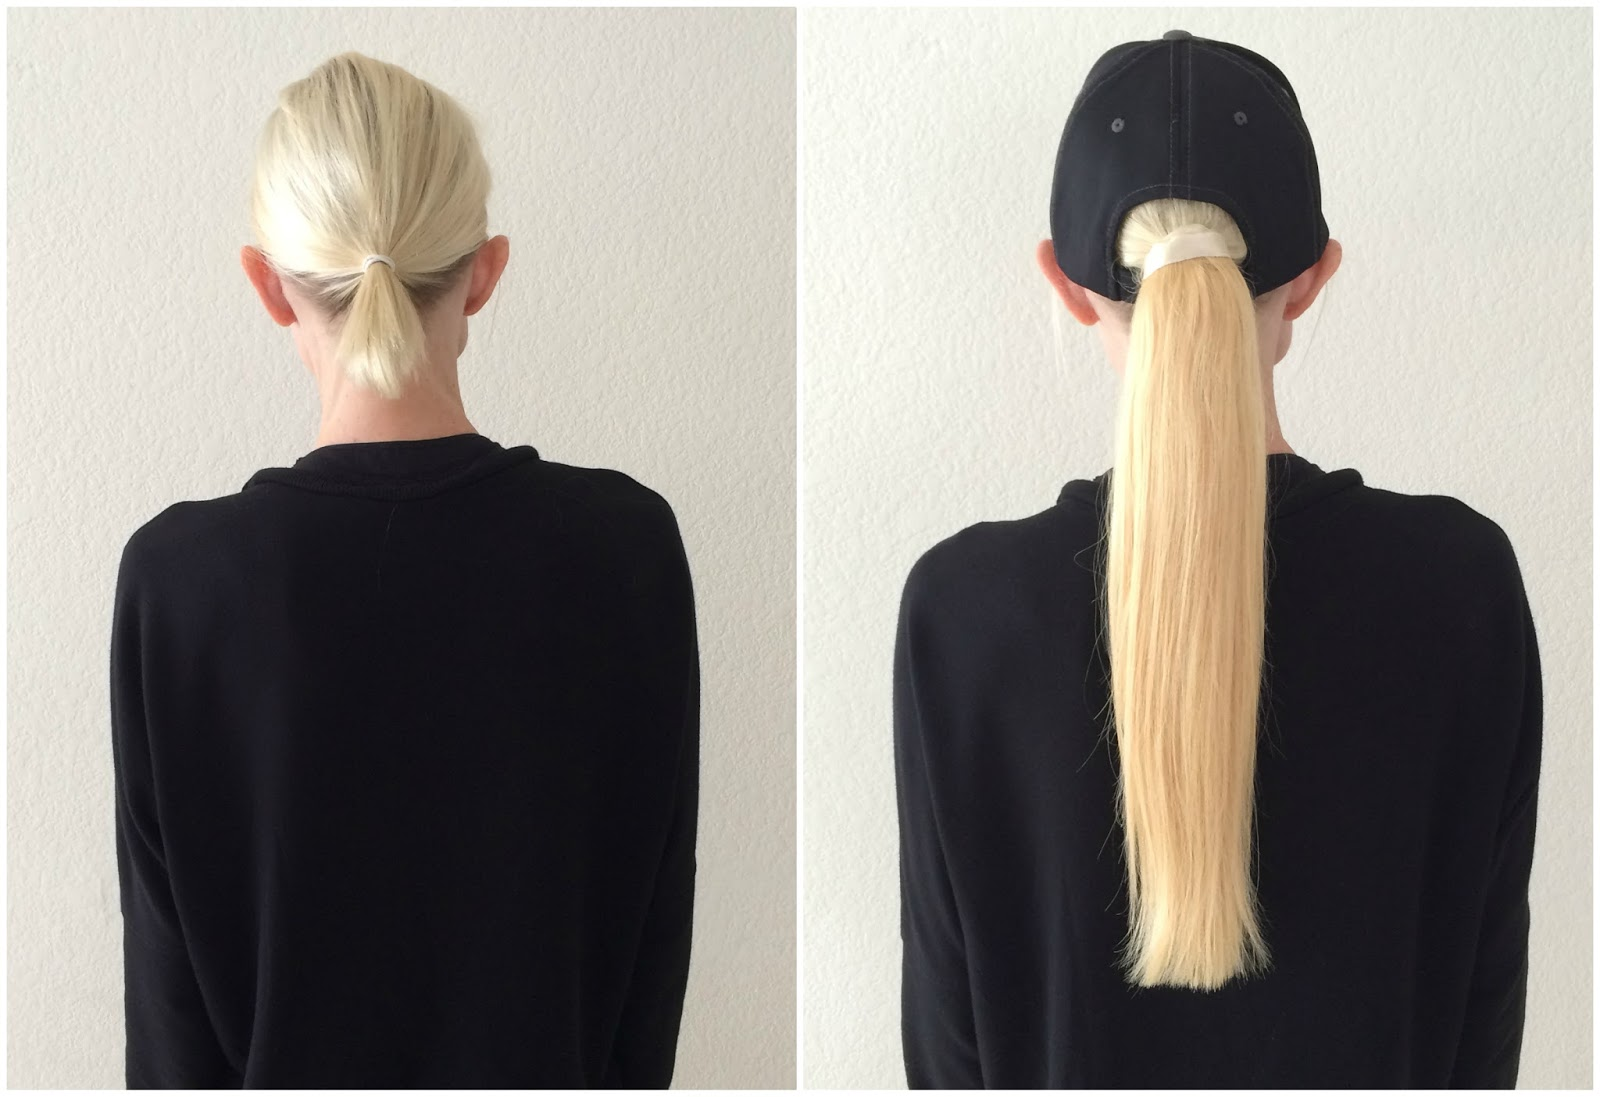 Marvelous Hair Extension Ponytail Pros And Cons On The Daily Express Short Hairstyles Gunalazisus